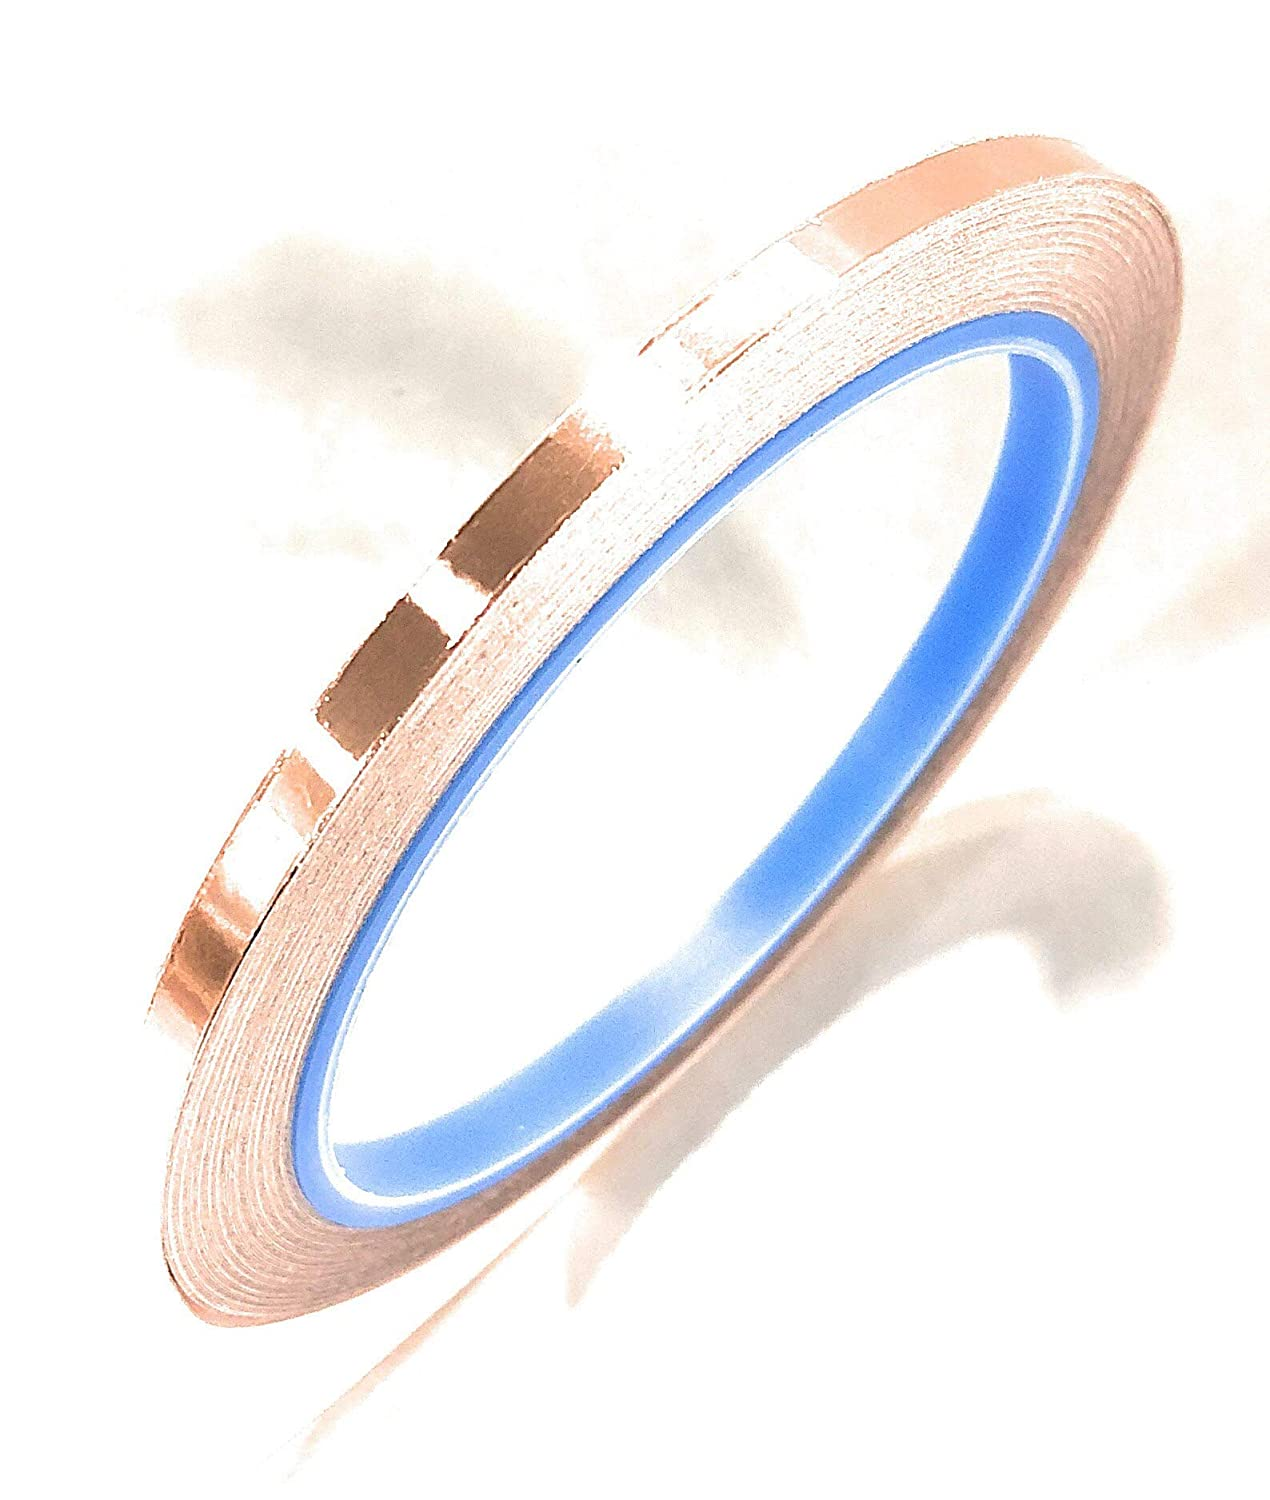 APT. Copper Foil with Conductive Acrylic Adhesive Tape, 36 Yds Length, (0.5 inch) Advanced Polymer Tape Inc